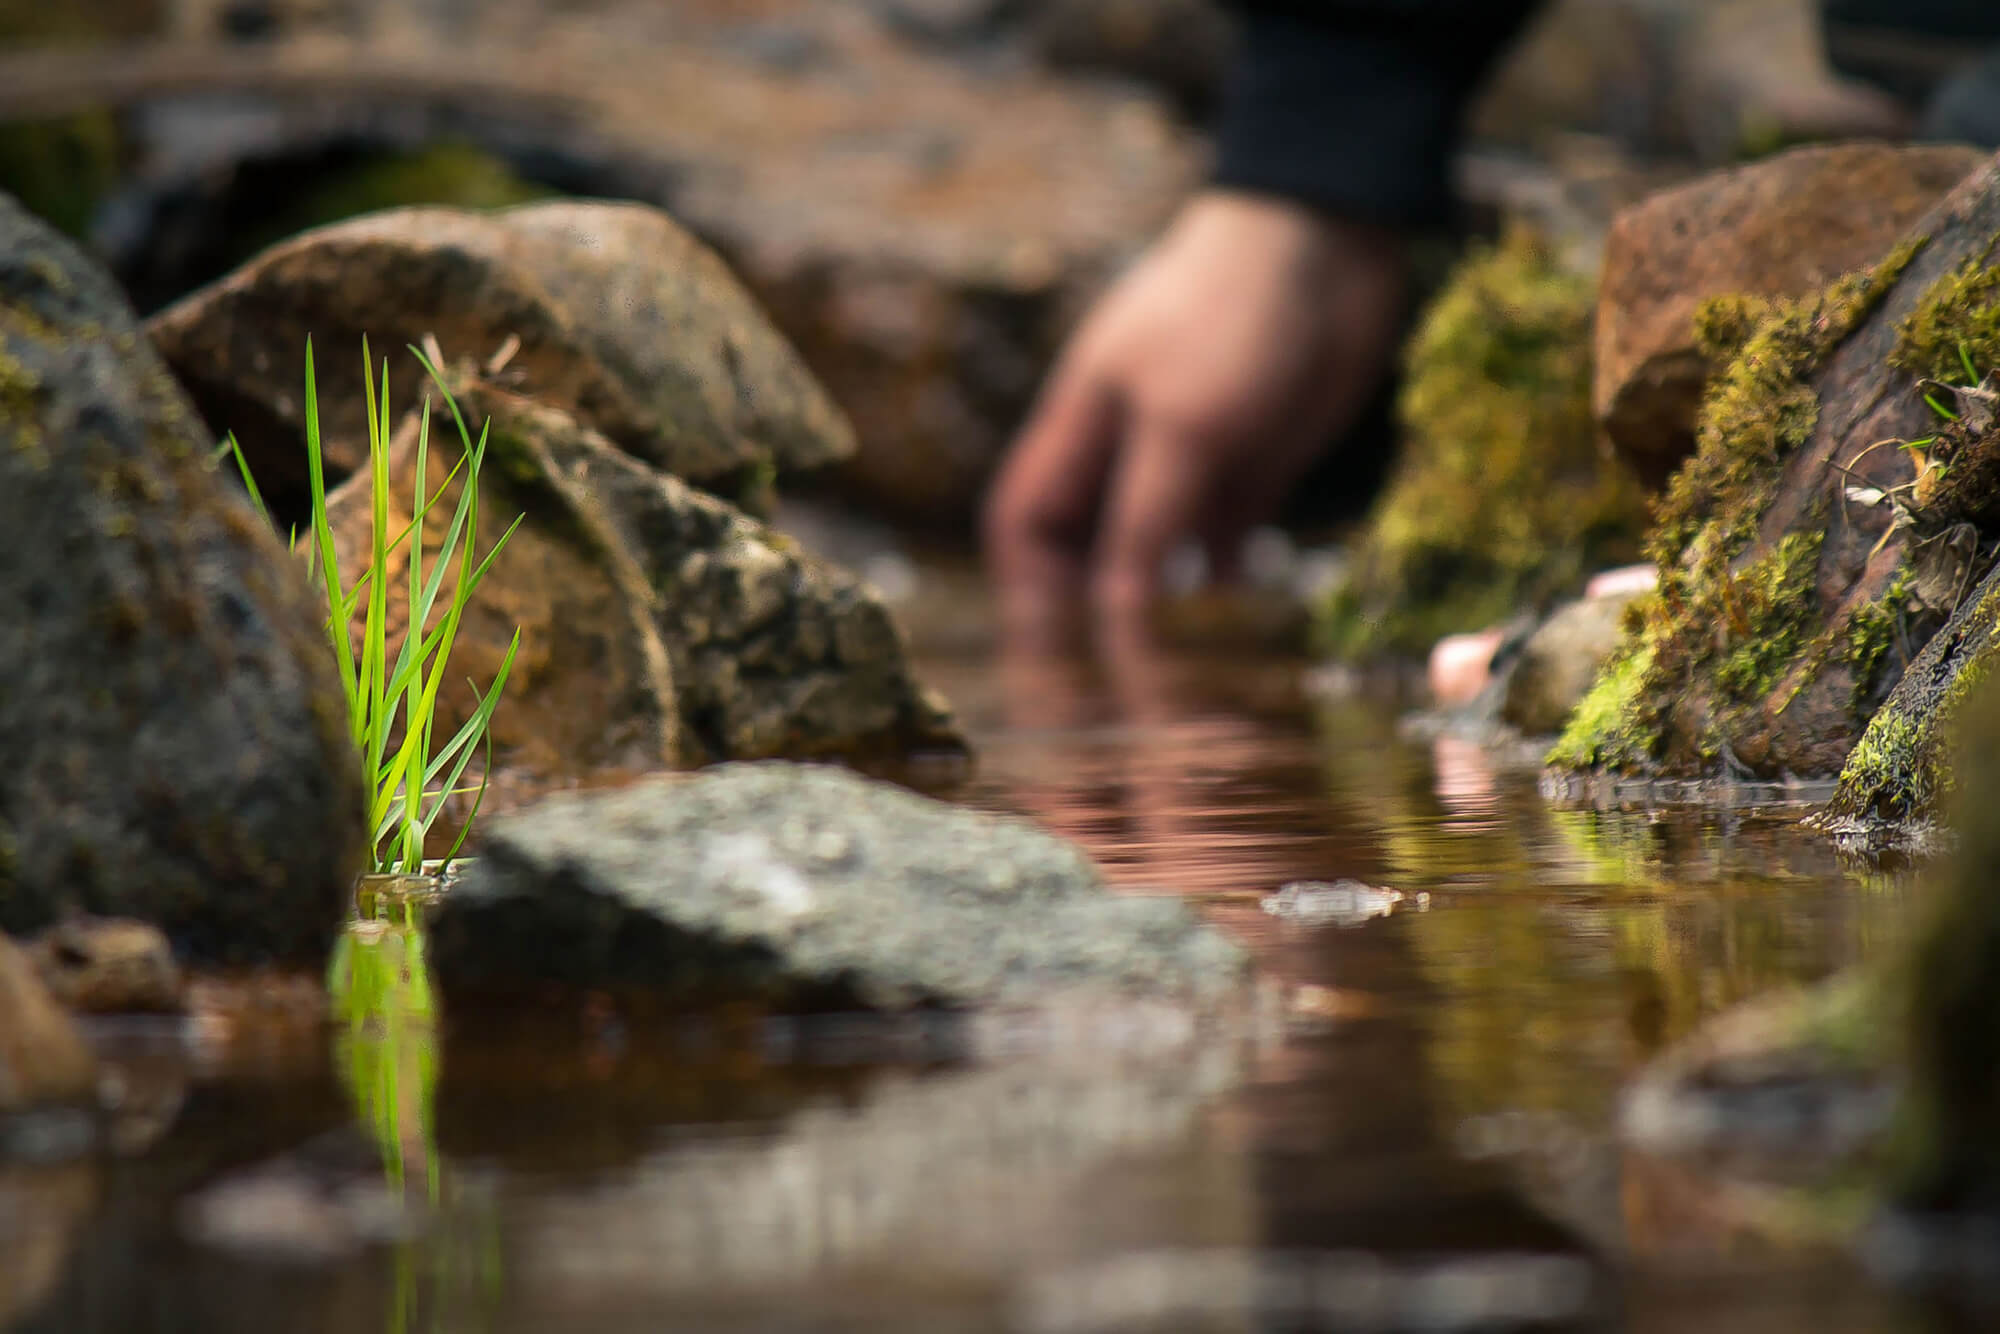 A person dipping their hand into a stream